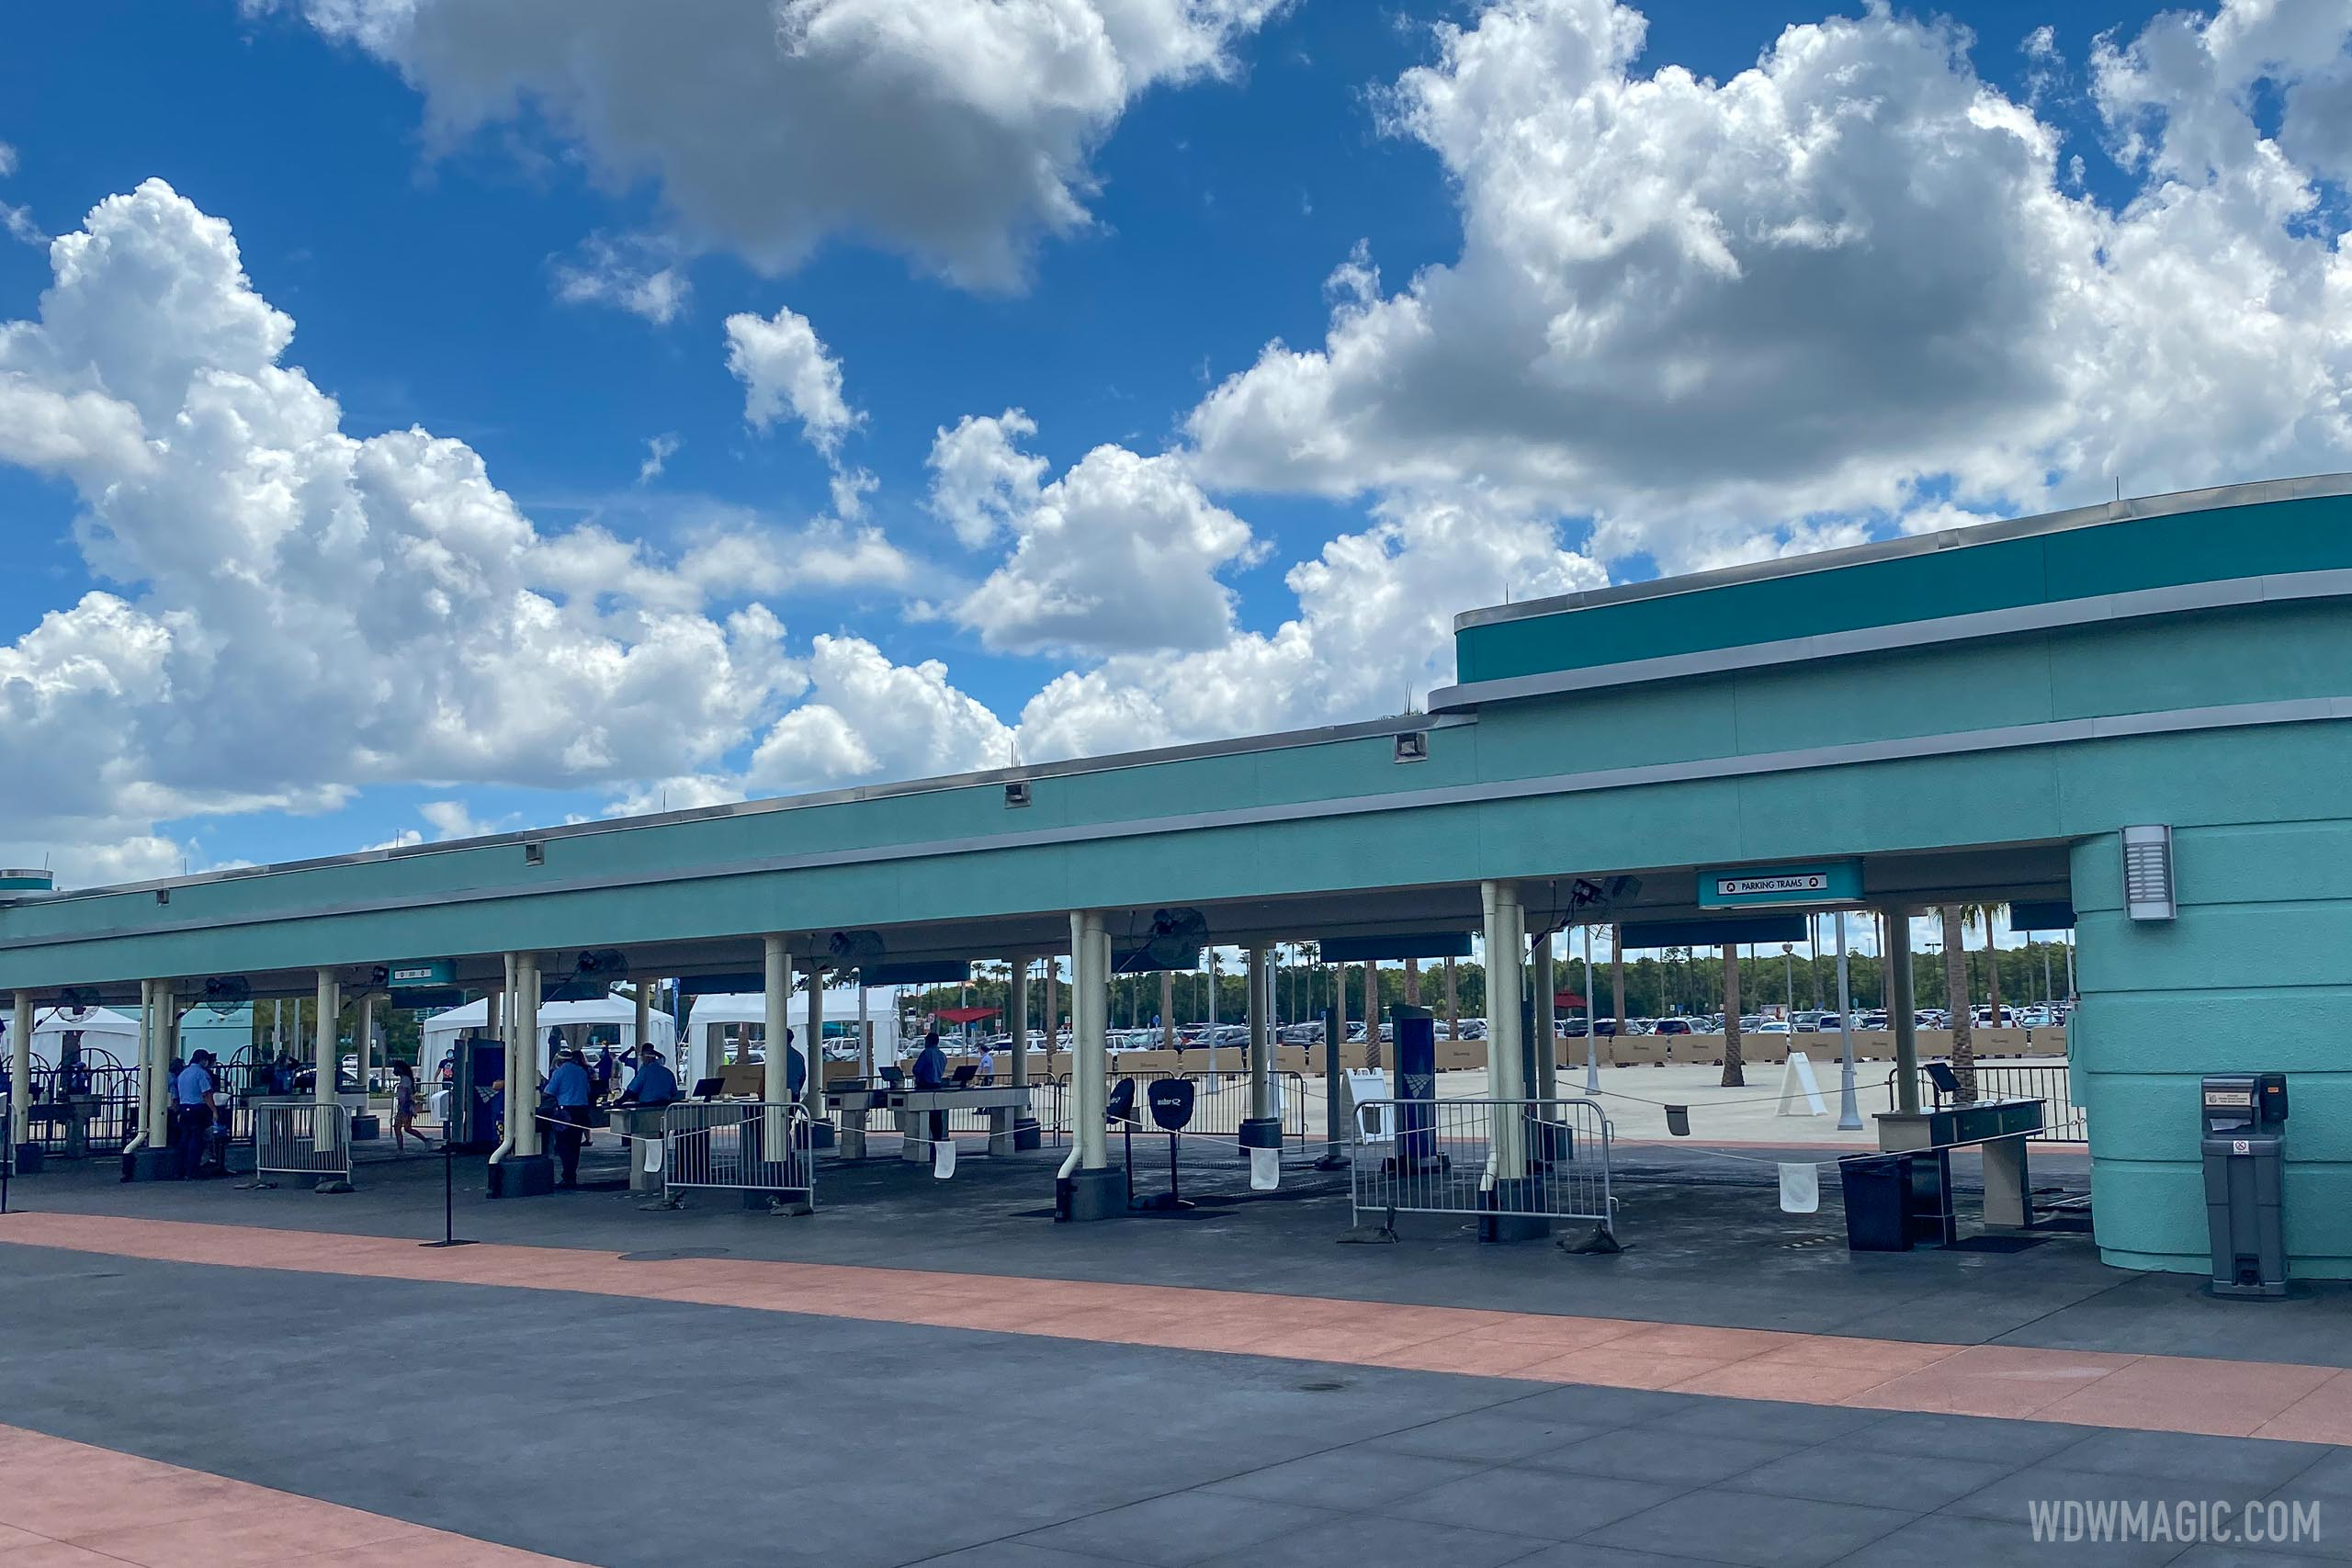 New walk-through security scanners at Disney's Hollywood Studios